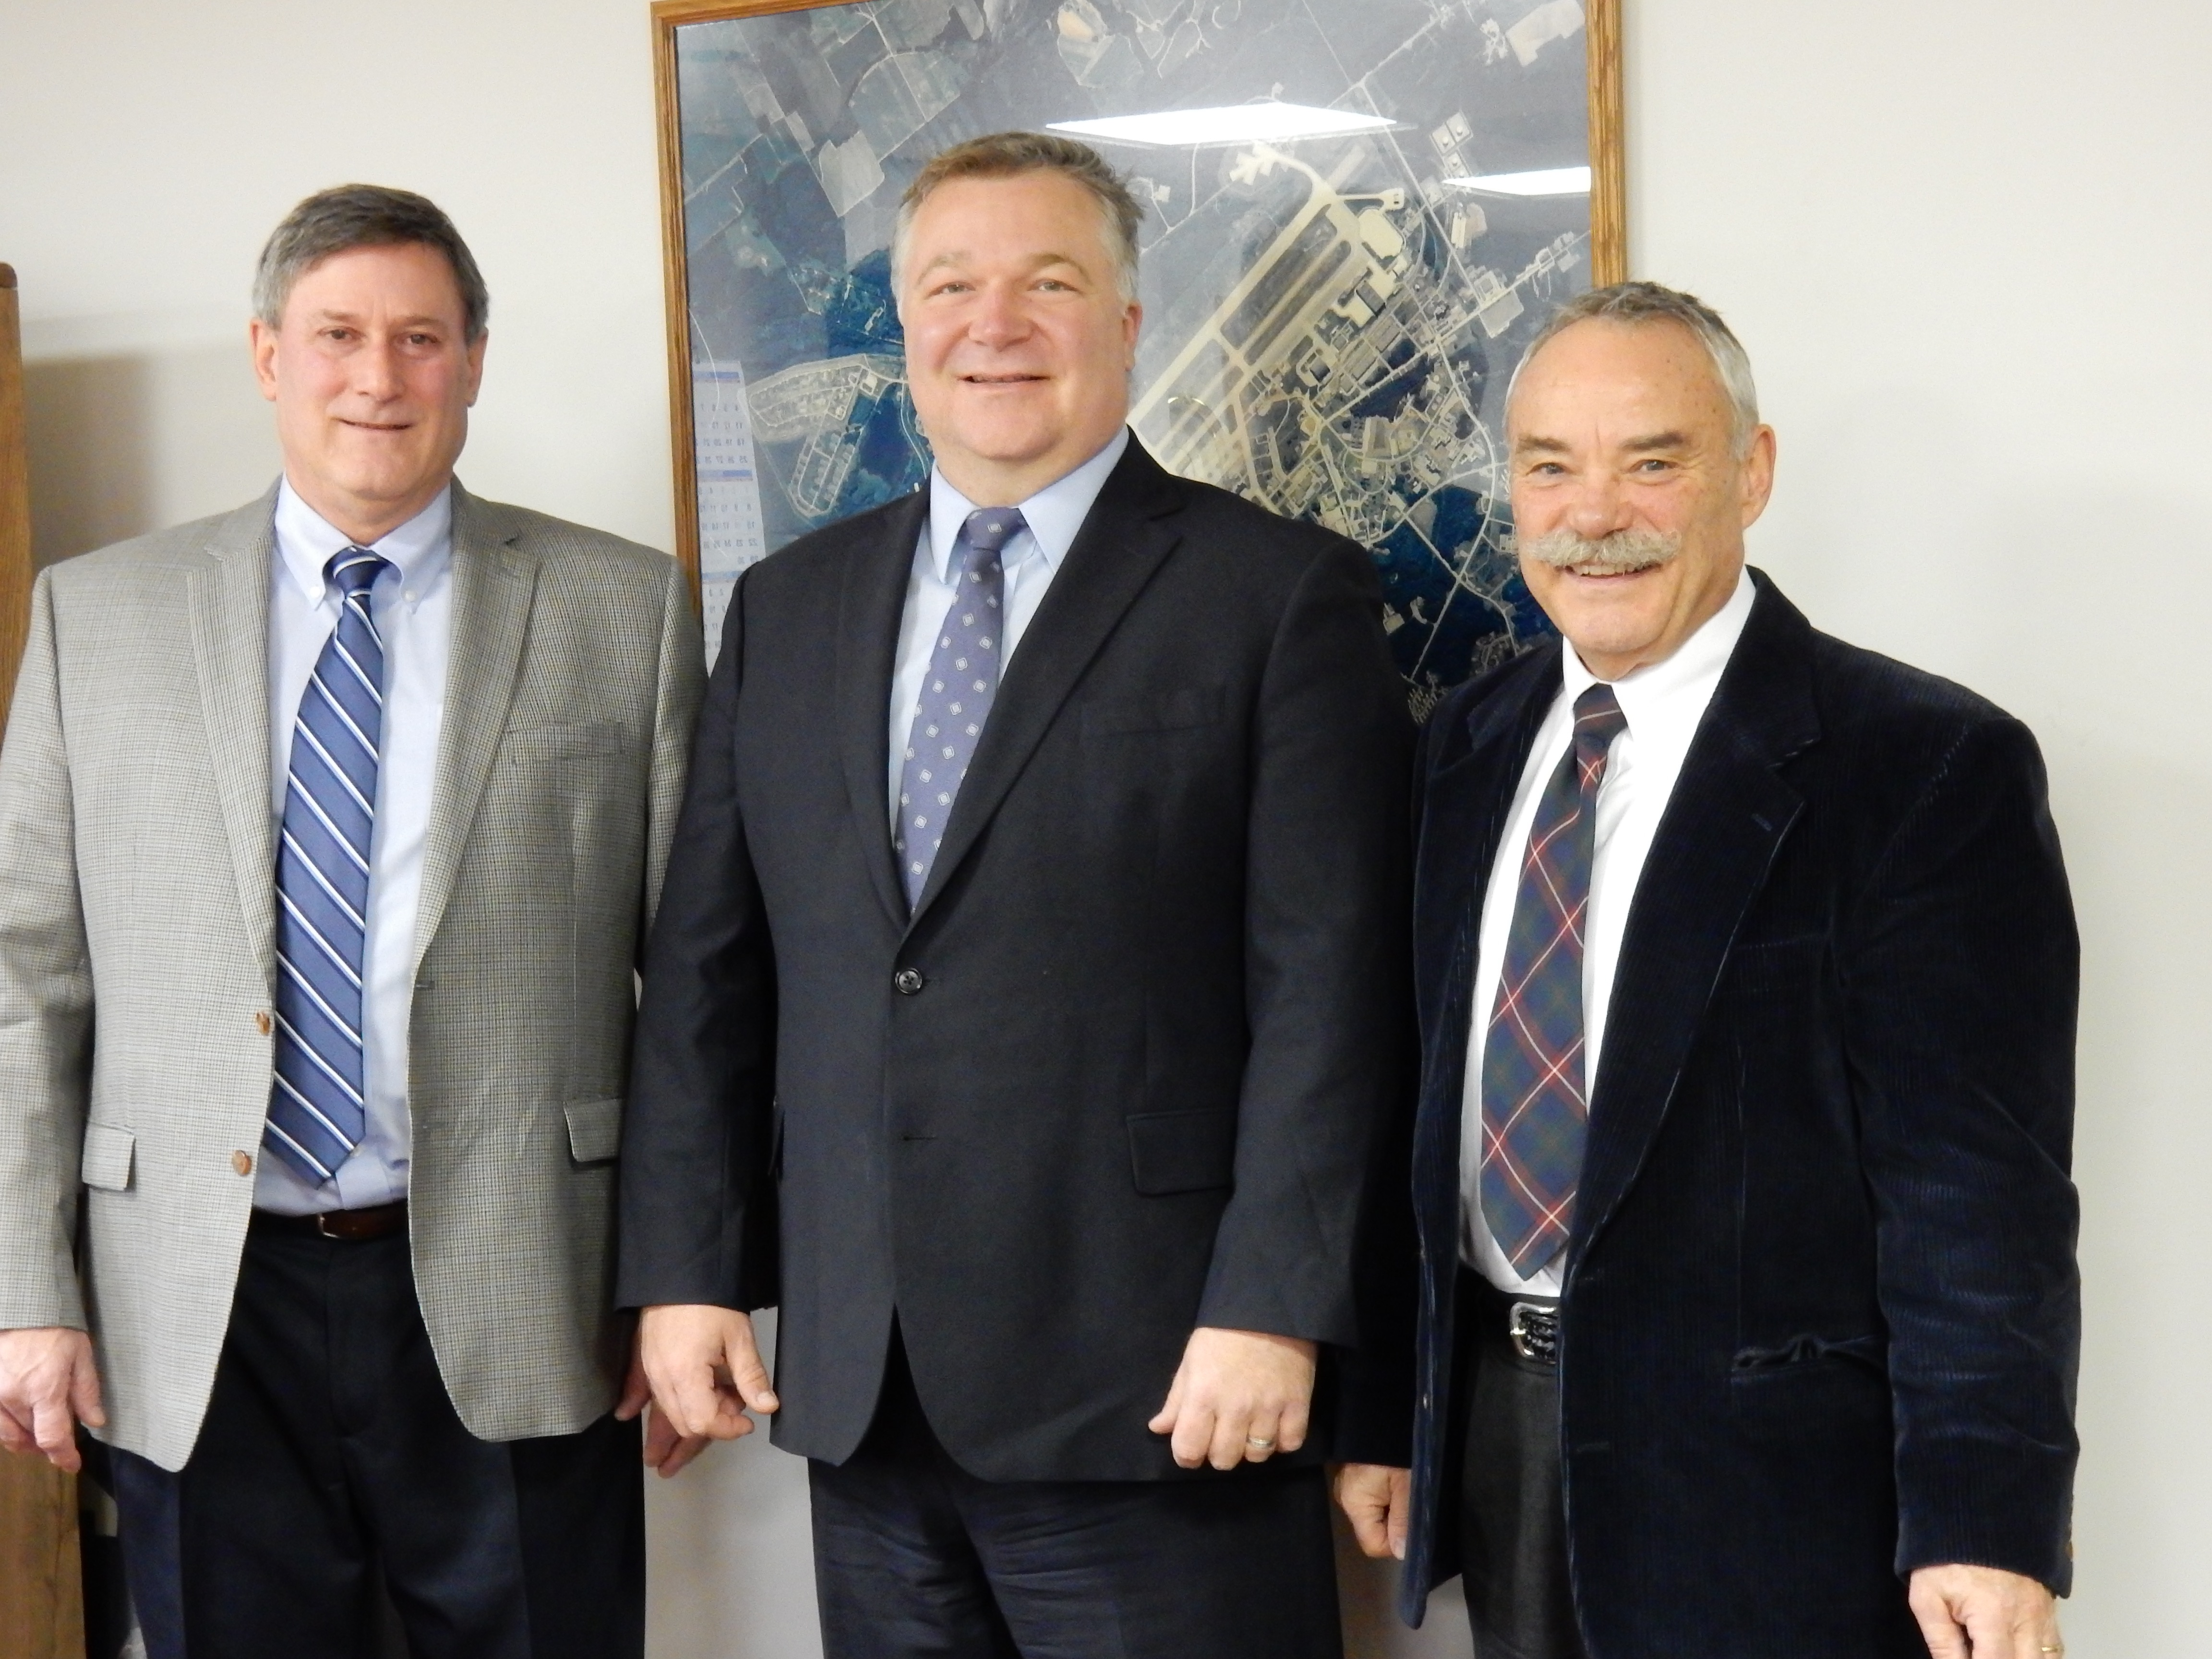 Loring Commerce Center President & CEO Carl Flora, NBRC Federal Co-Chair Mark Scarano, and Alain Ouellette from Northern Maine Development Corporation.